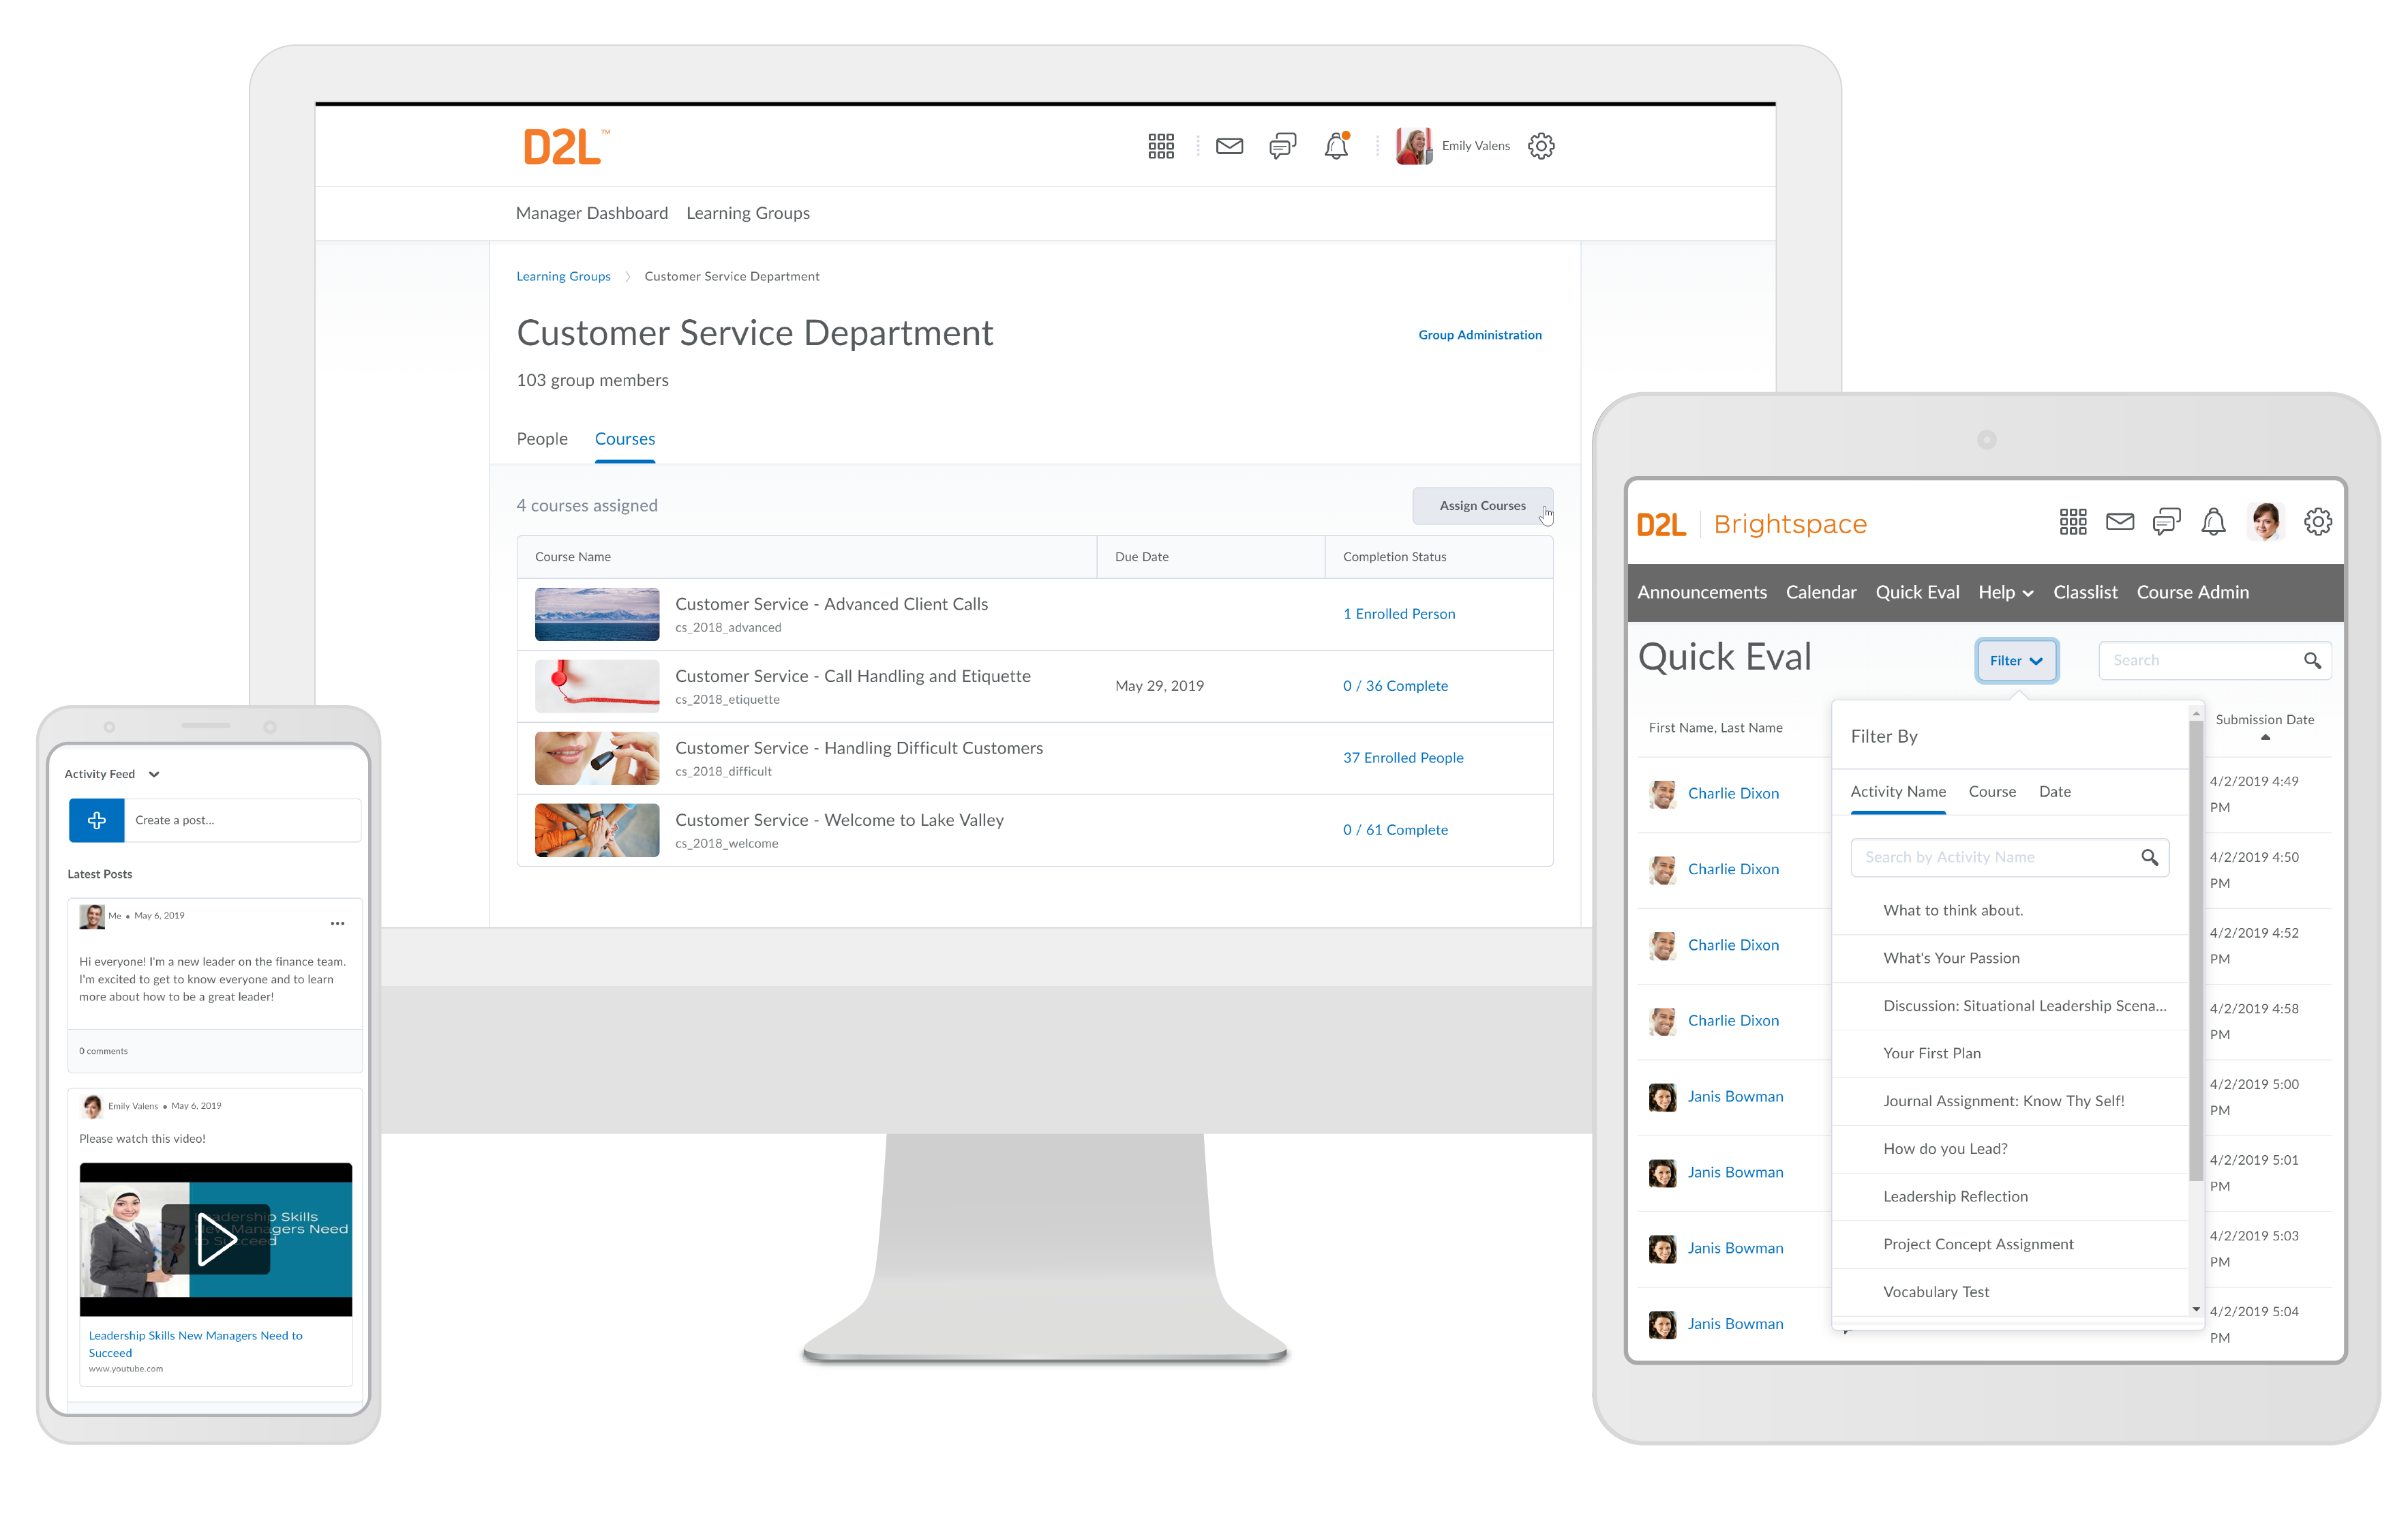 Brightspace Software - Brightspace corporate learning platform